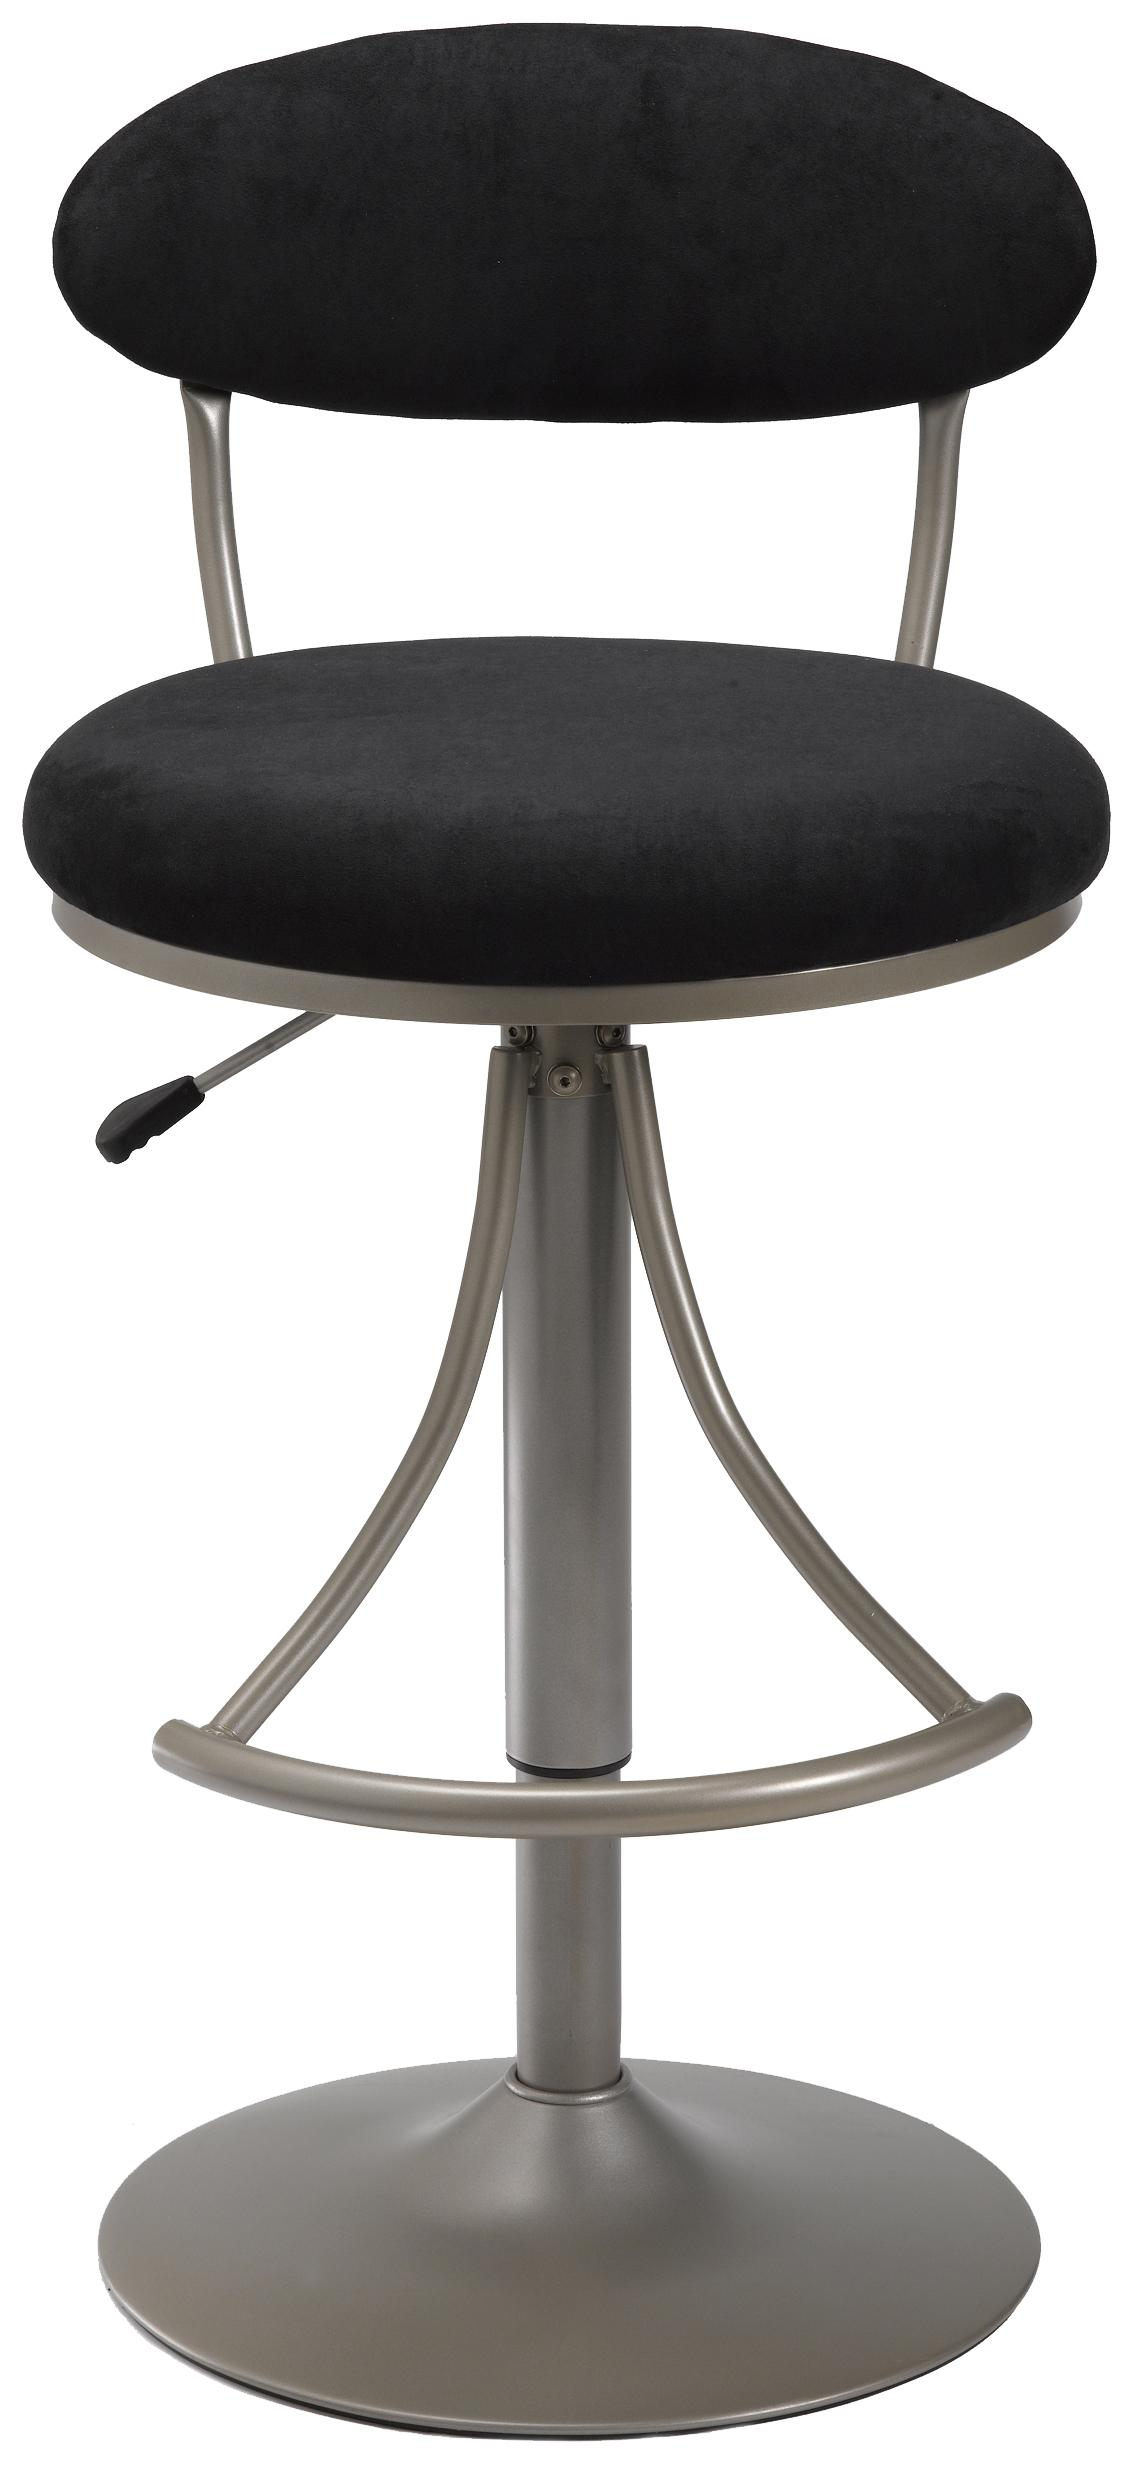 Metal Stools Adjustable Height Venus Swivel Stool With